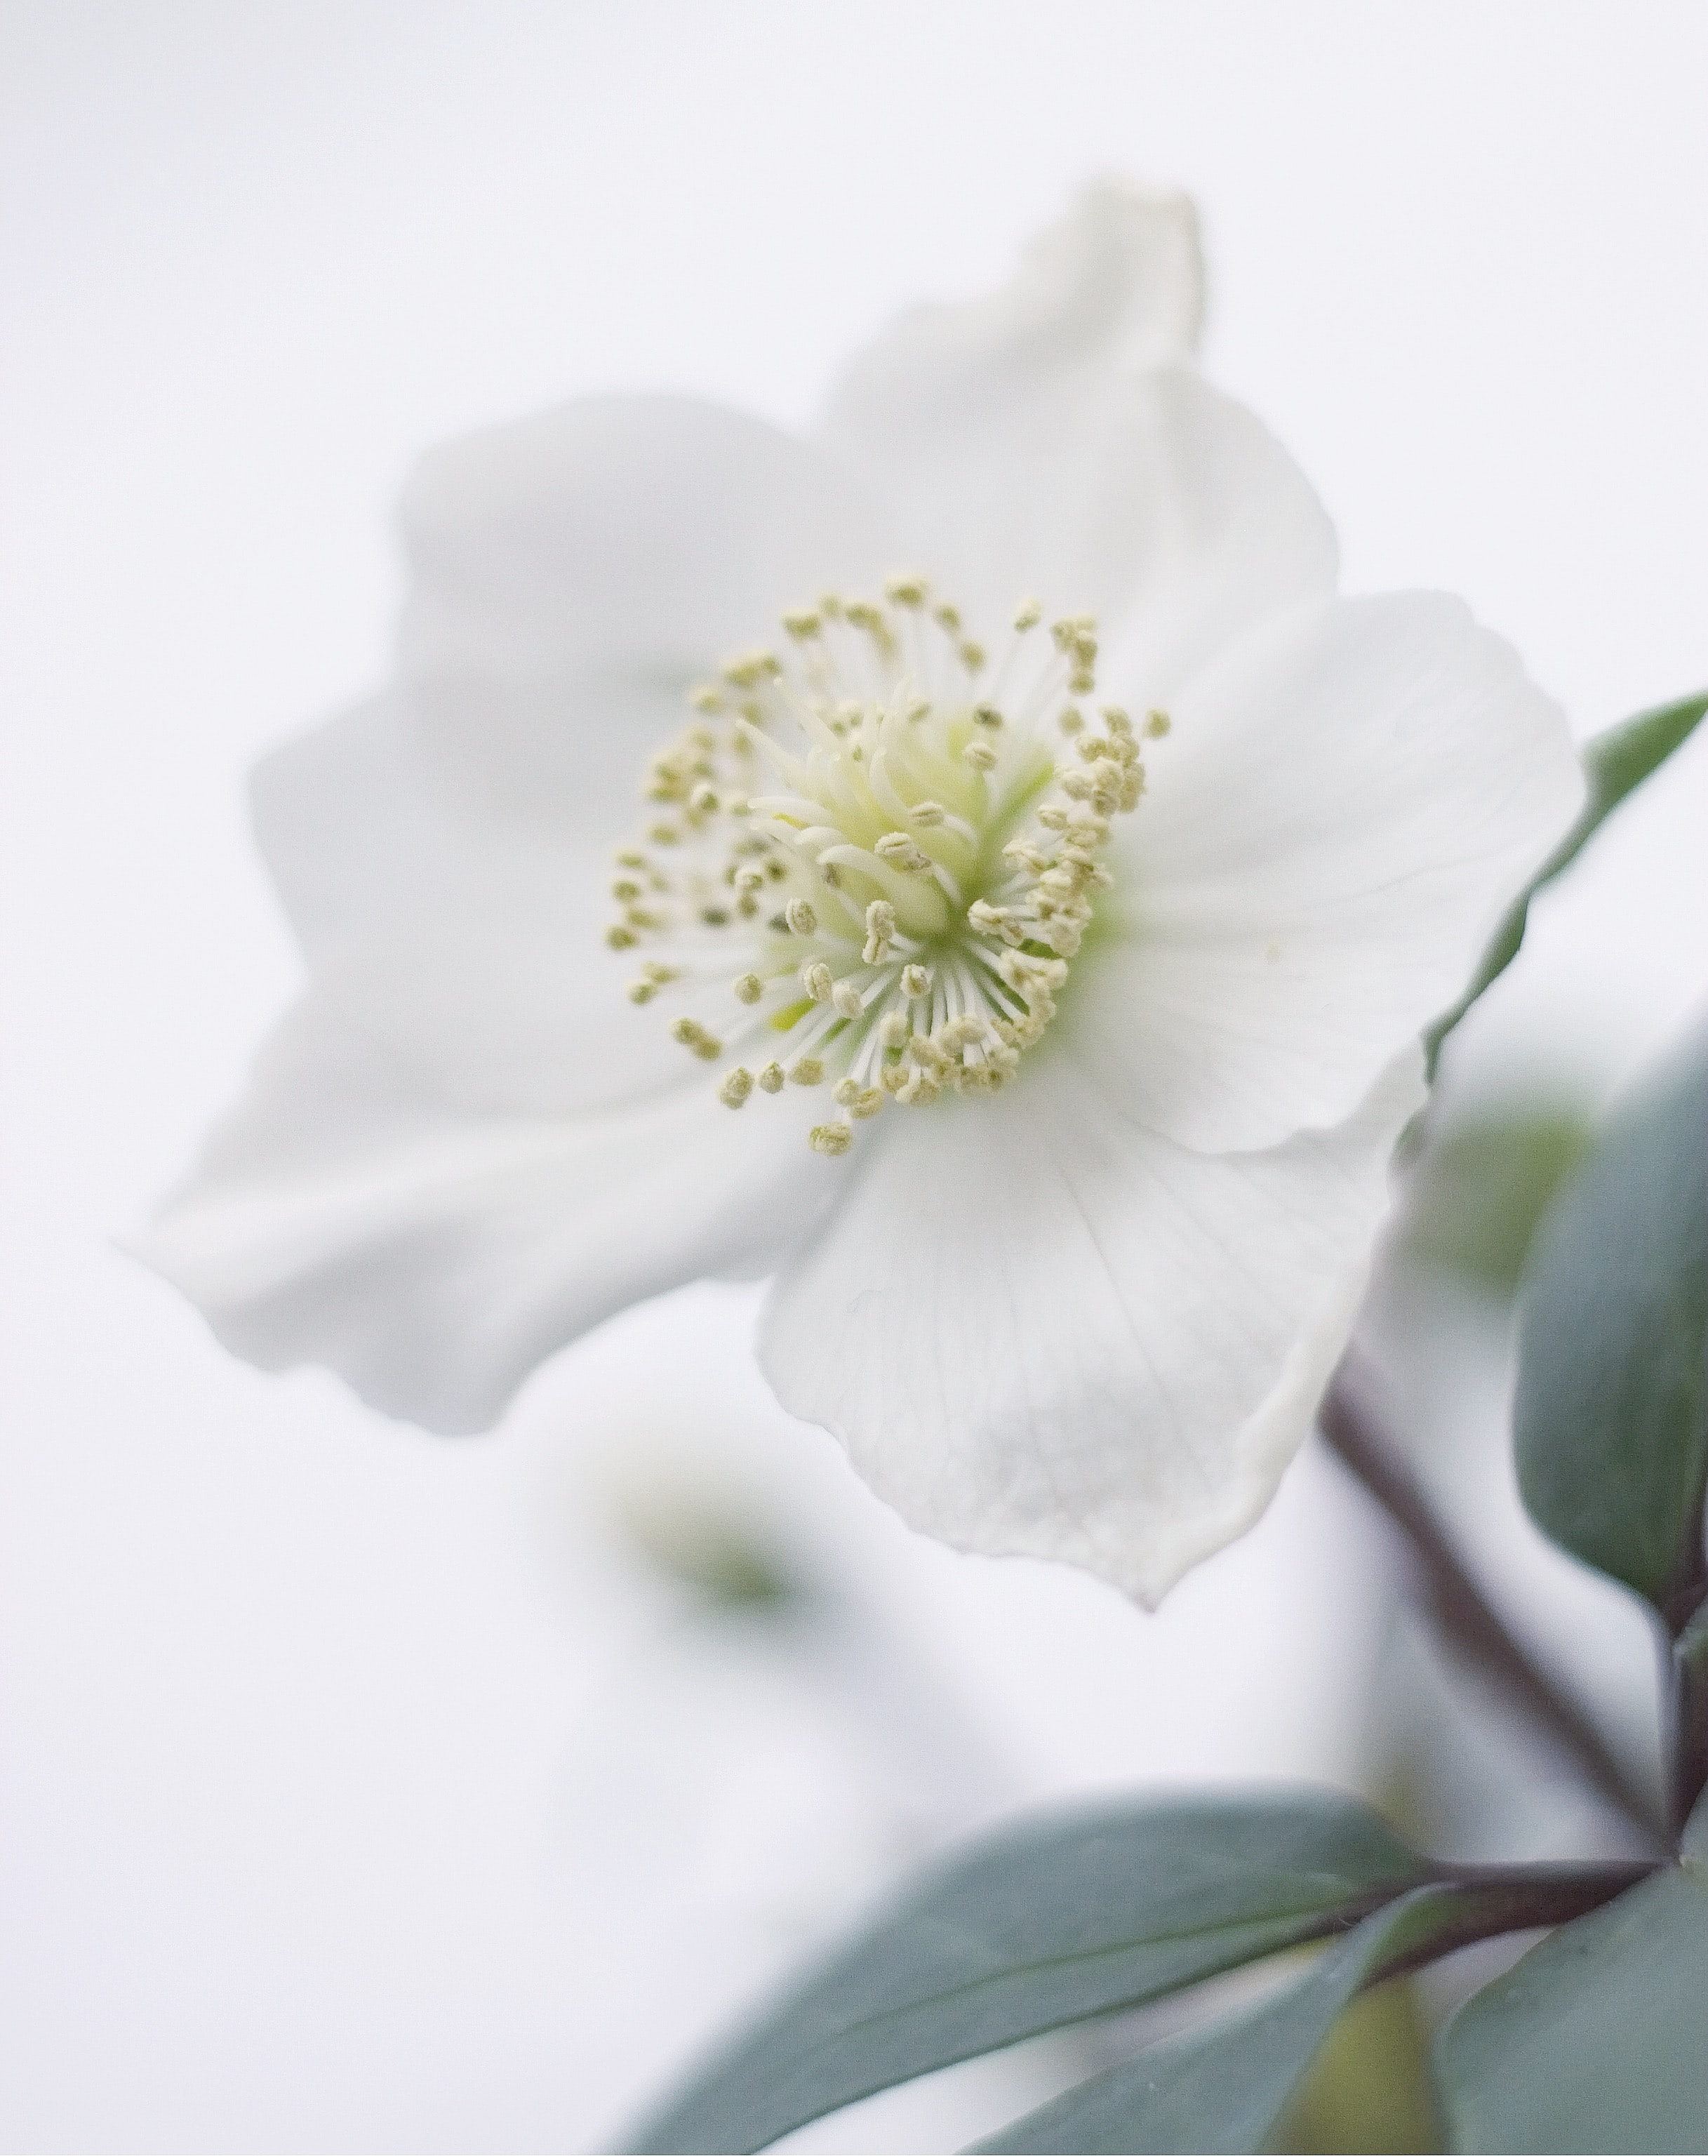 white petaled flower